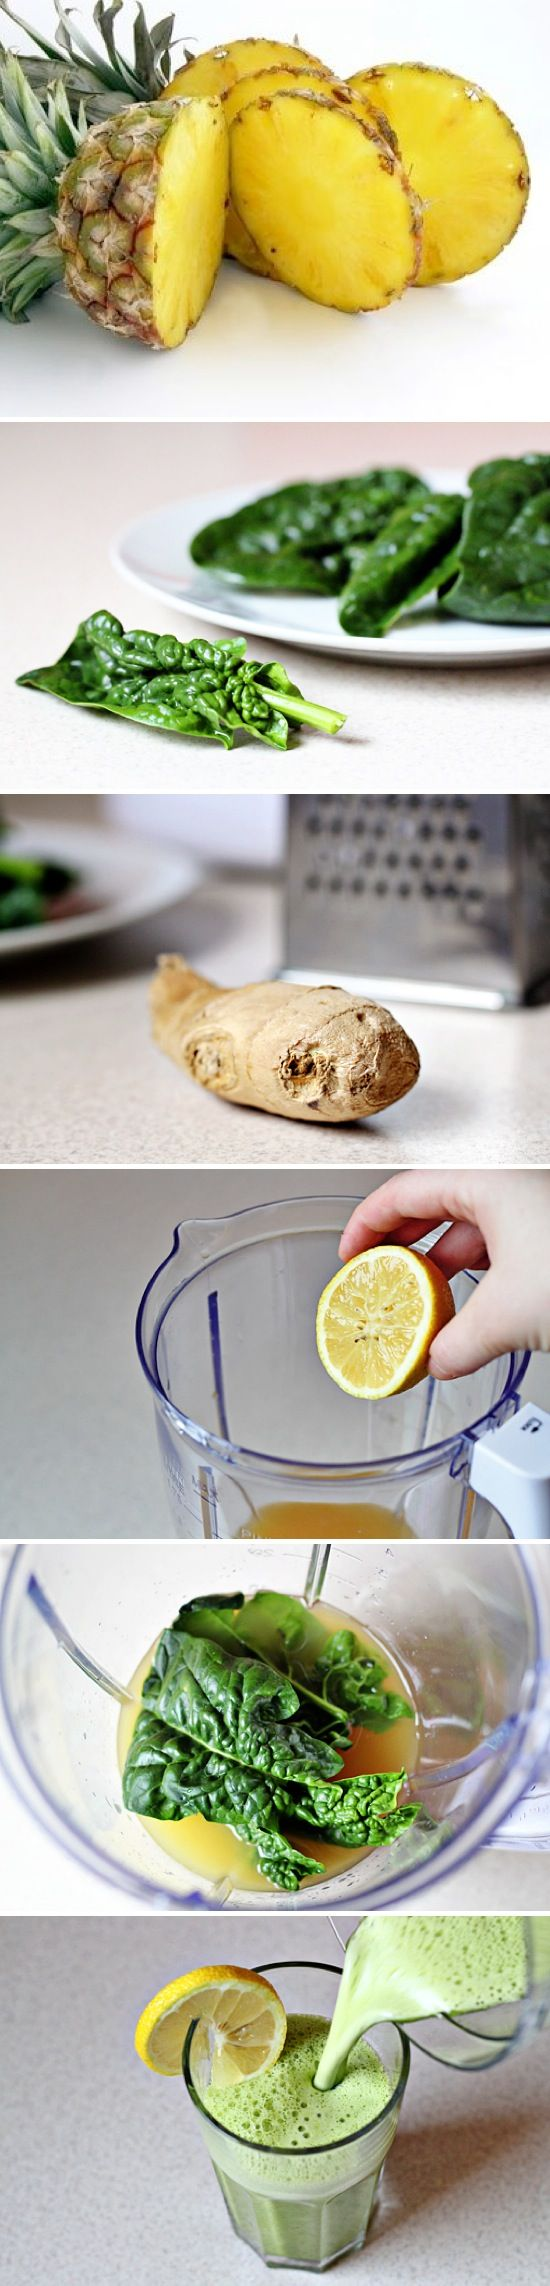 Detox Smoothie. A fresh start to the new year!